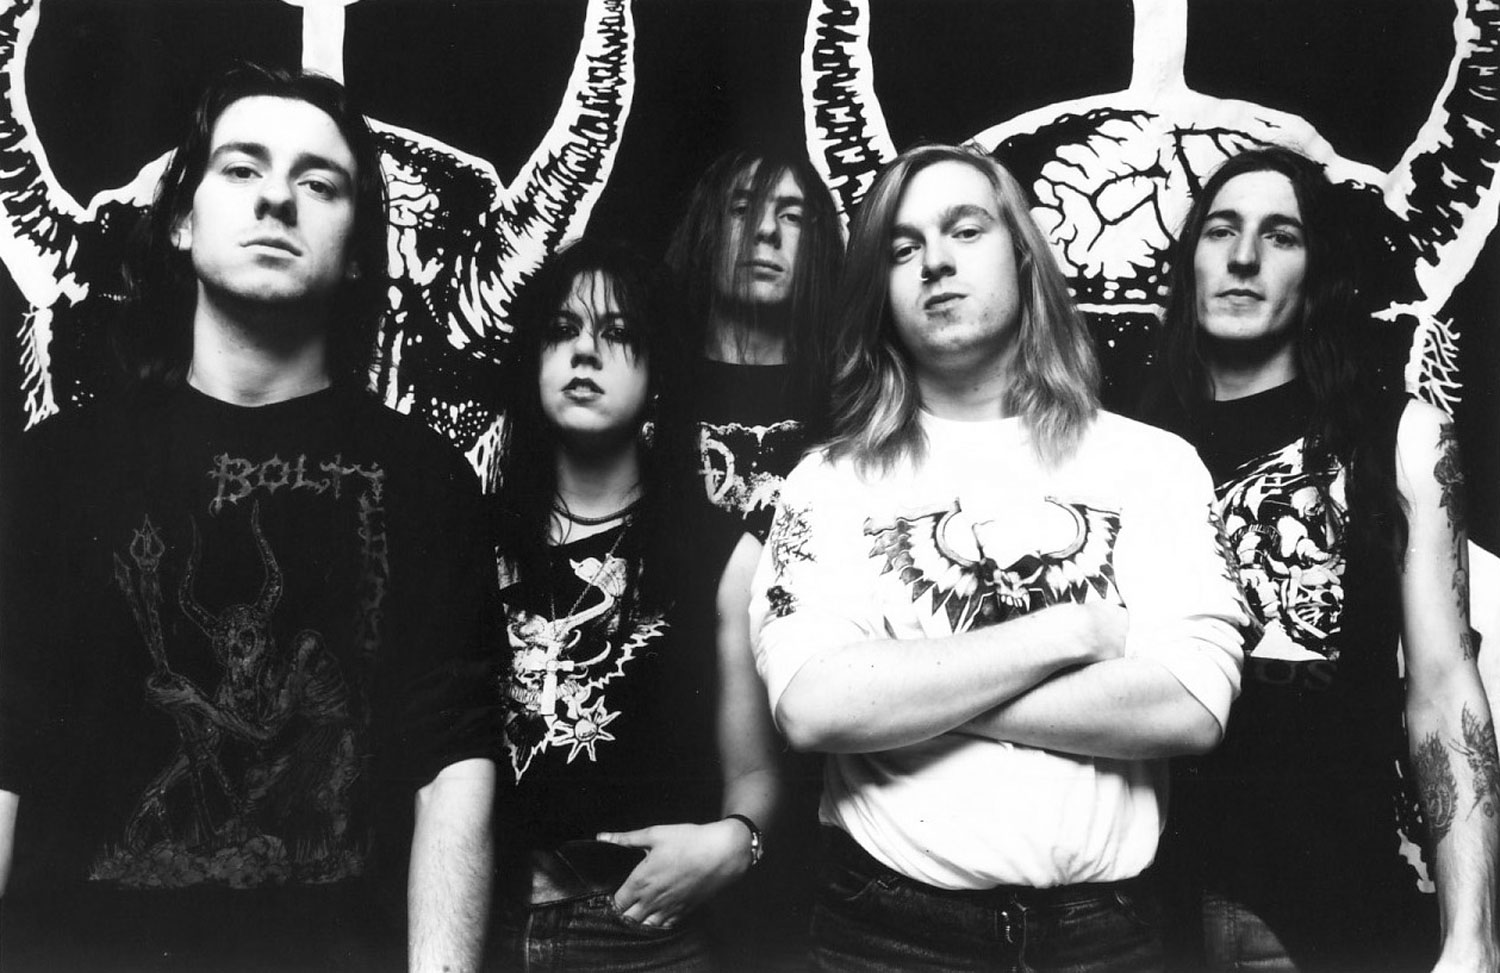 Death metal band Bolt Thrower. Photo source:Todestrieb Records